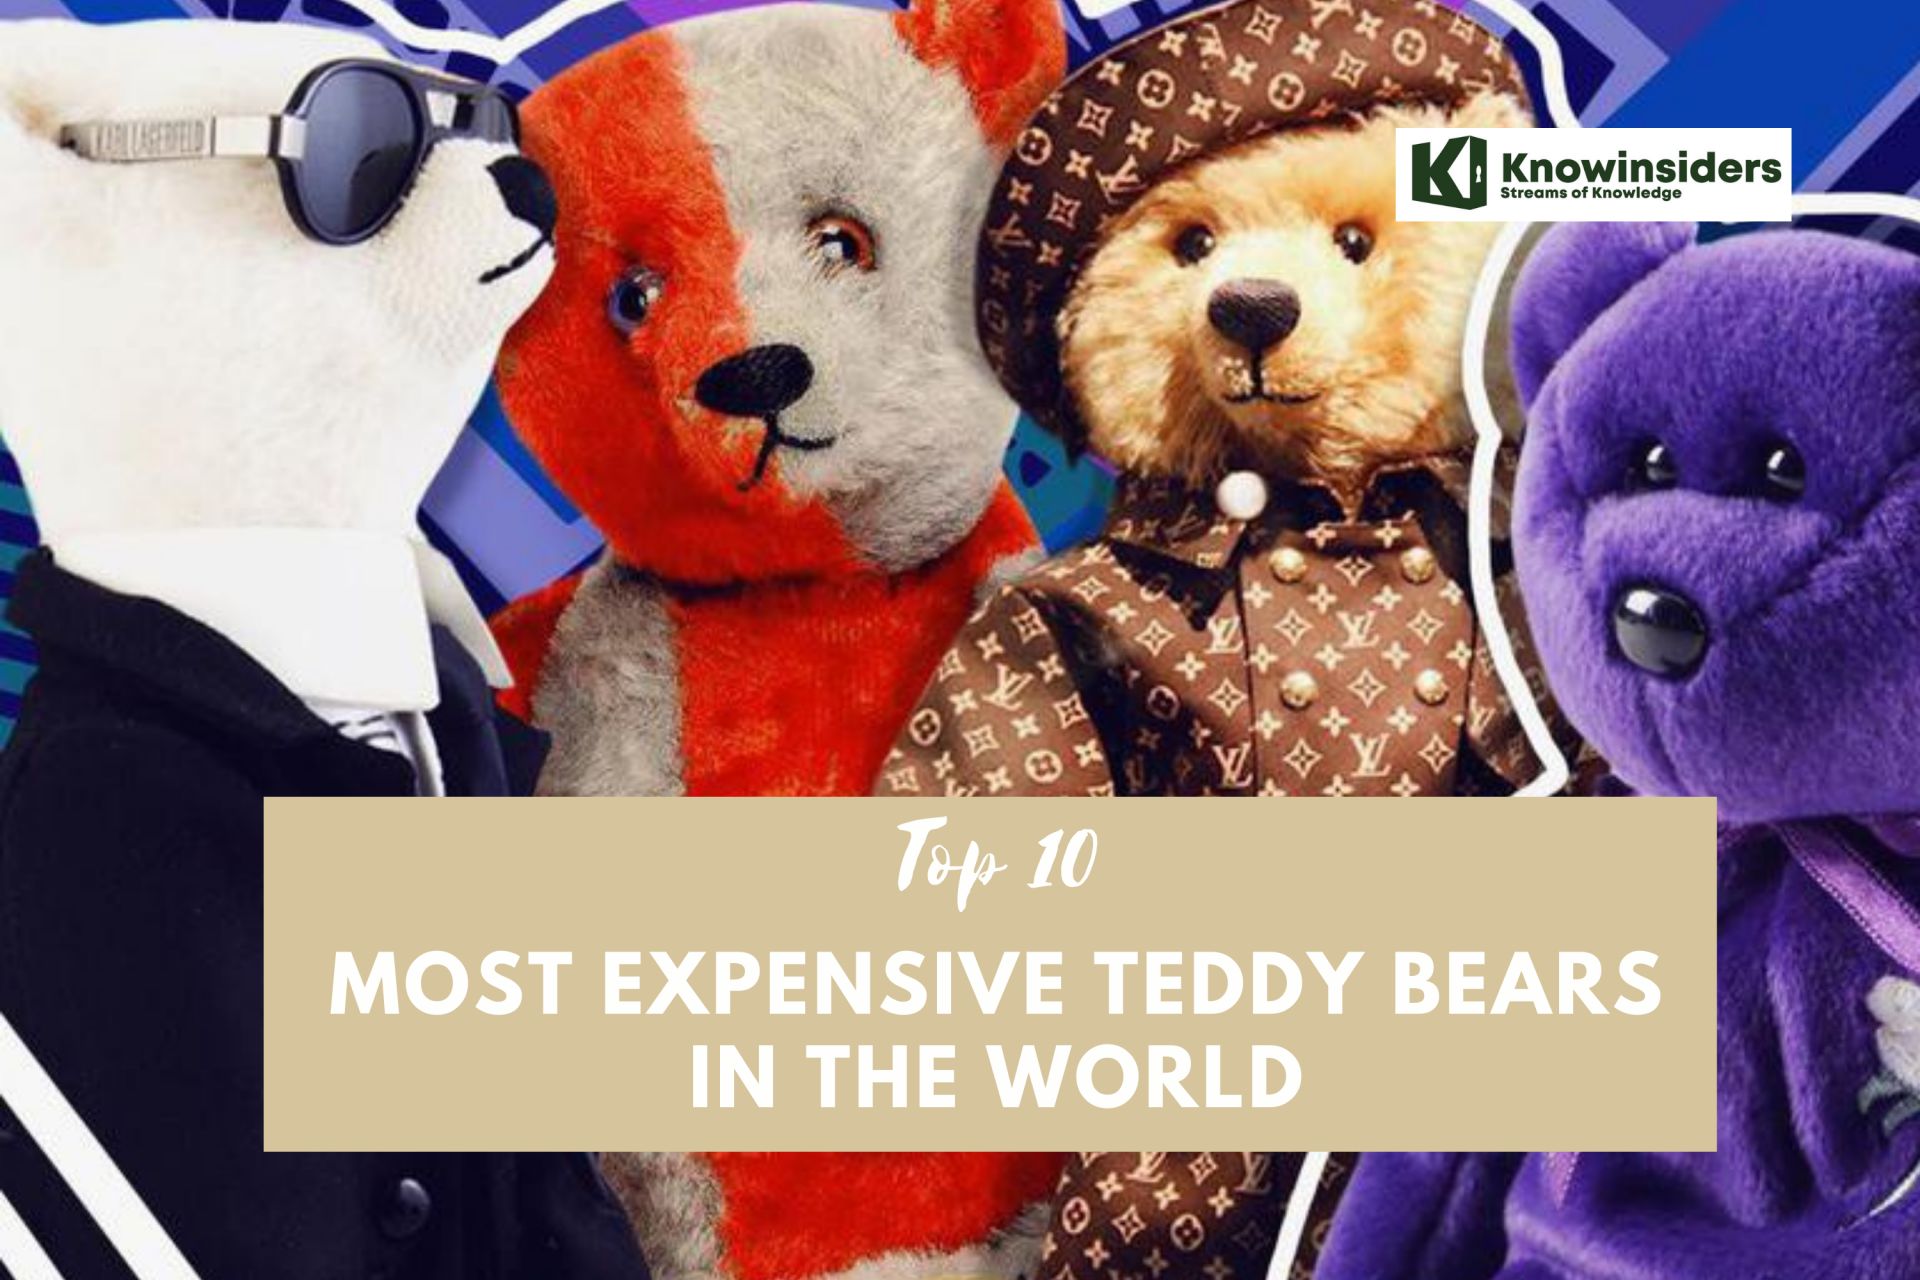 Top 10 Most Expensive Teddy Bears in the World